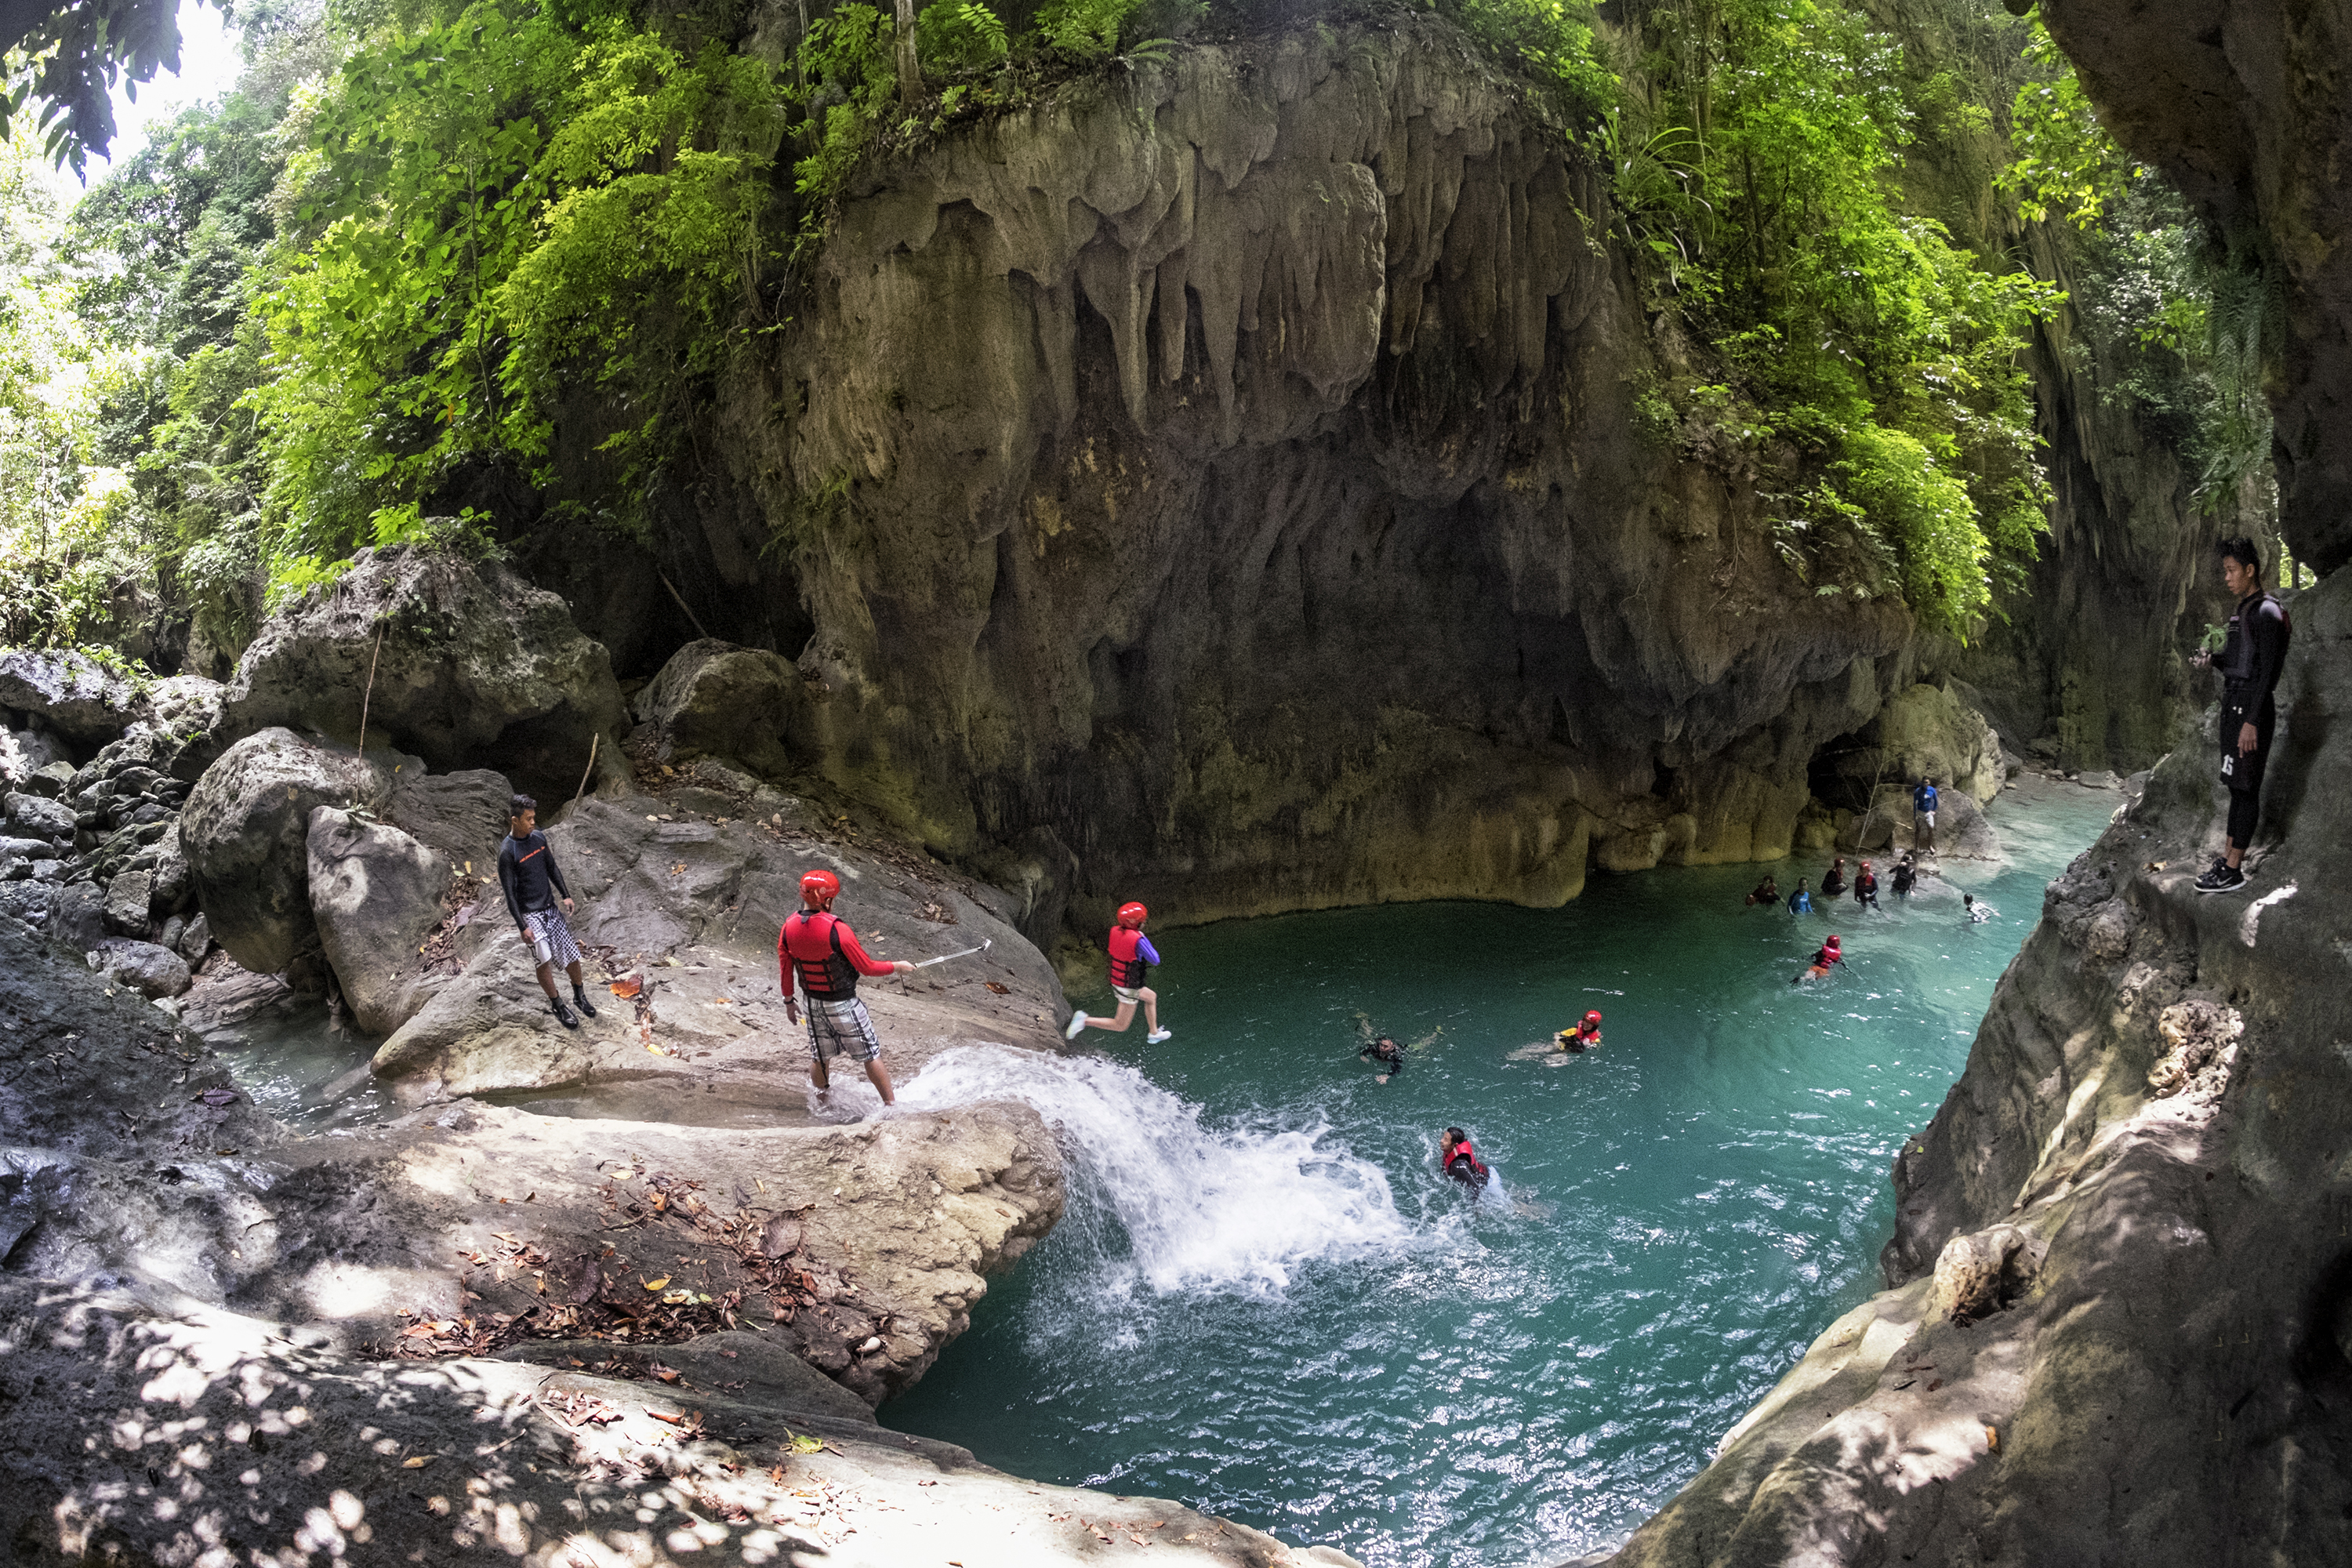 A tourist during the Canyoneering experience at Kawasan Falls